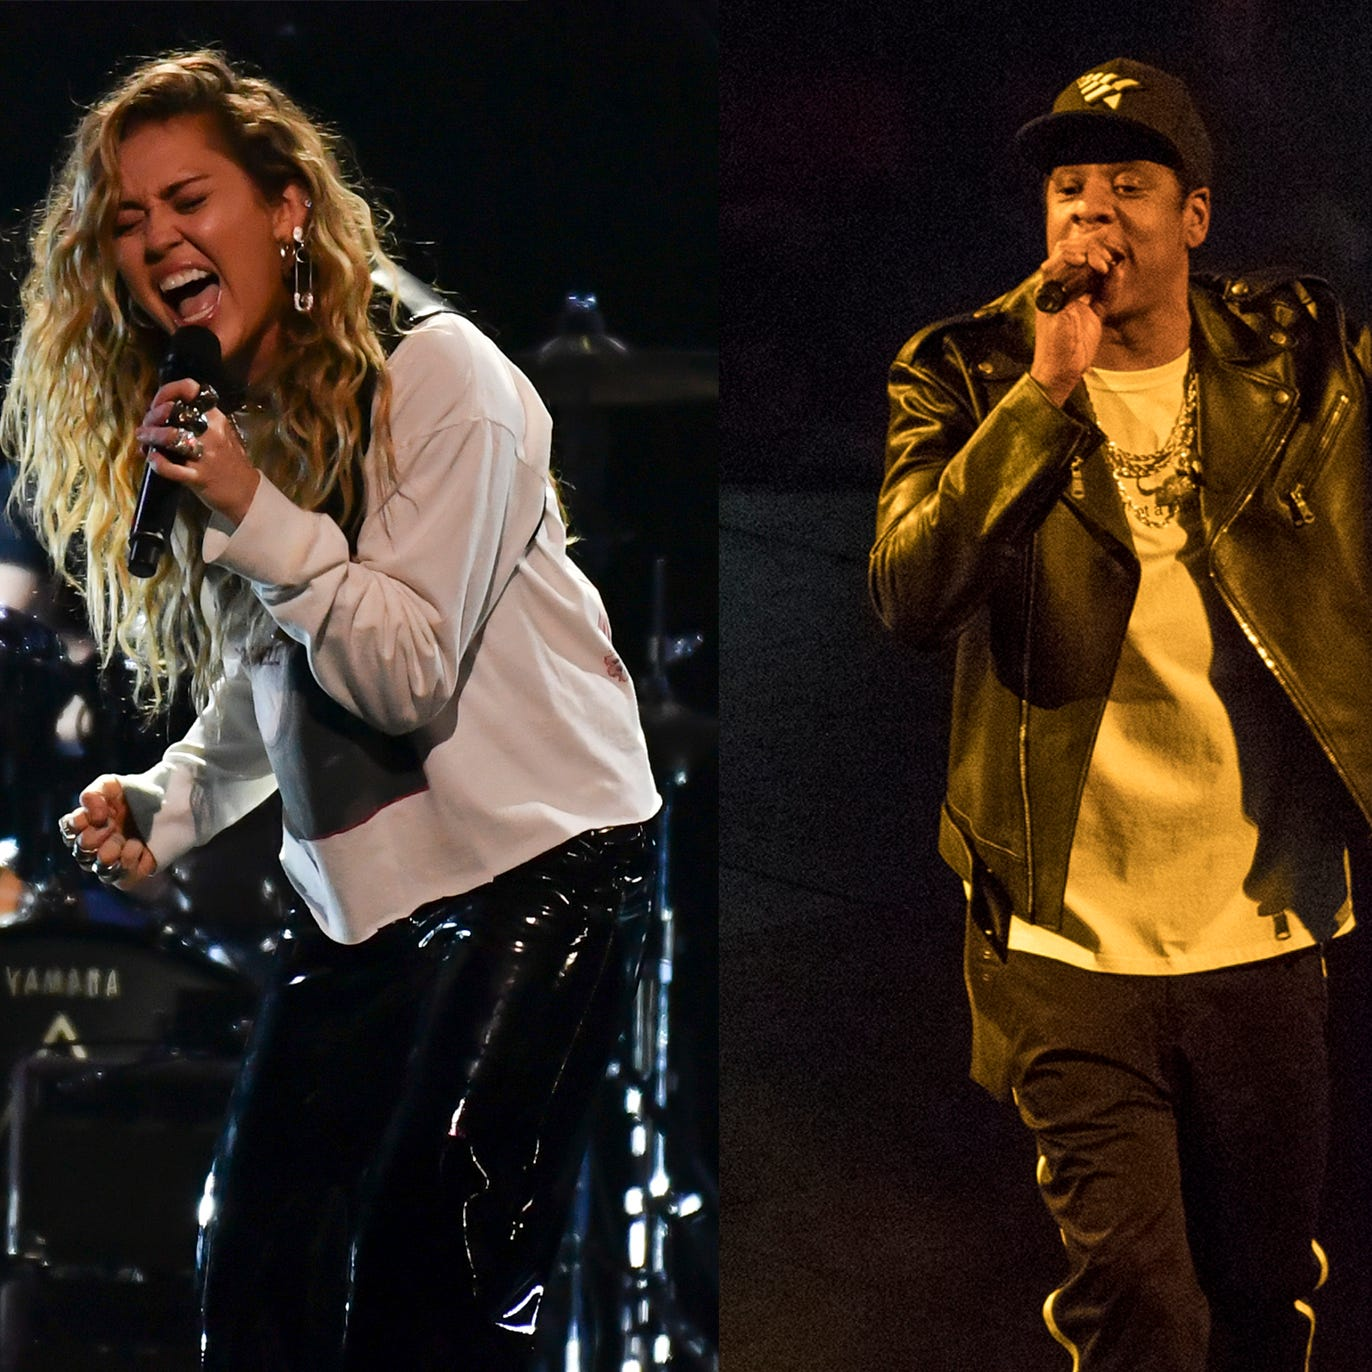 Woodstock 50 lineup revealed: Jay-Z, Miley Cyrus, The Black Keys performing